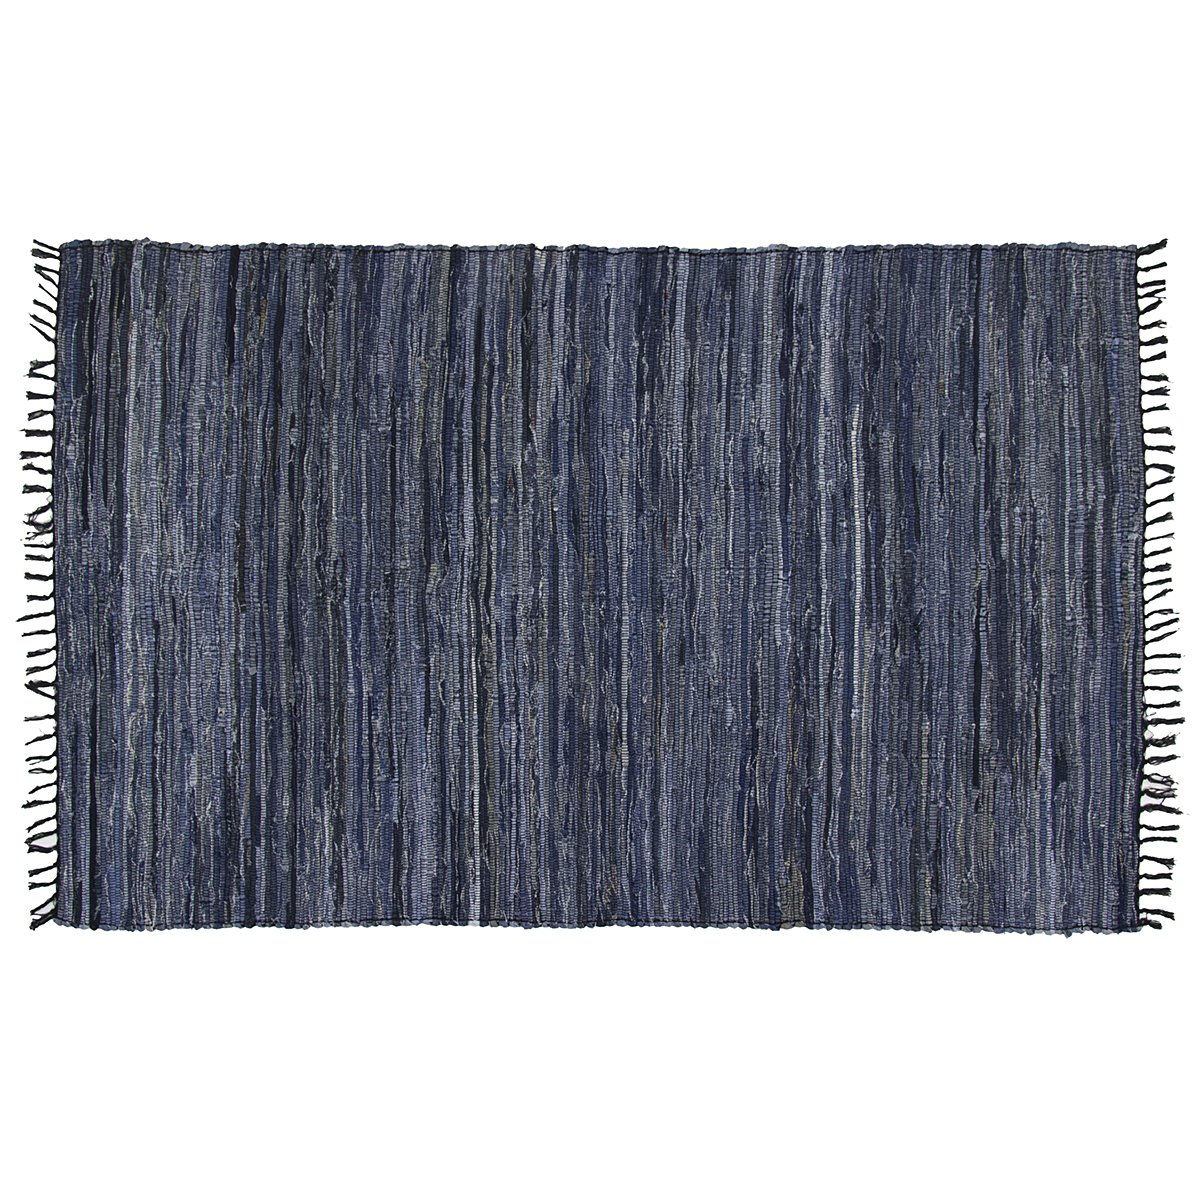 DG Home Goods Chindi 5 x 8 Blue Denim 100 Recycled Cotton Area Rag Rug Natural Woven Fabric